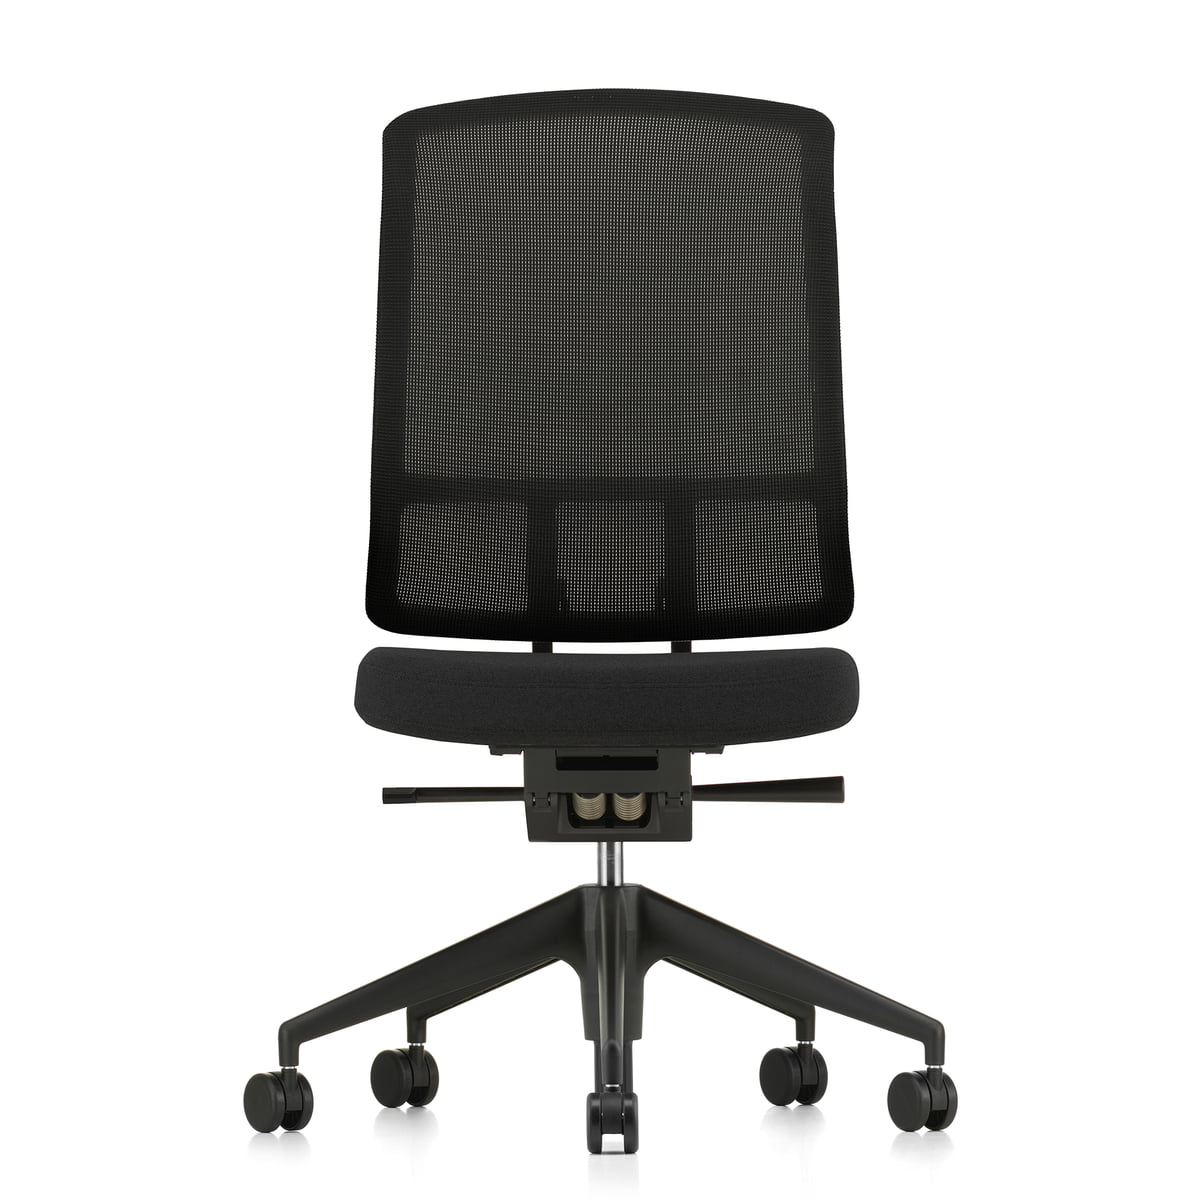 am chair by vitra connox shop. Black Bedroom Furniture Sets. Home Design Ideas